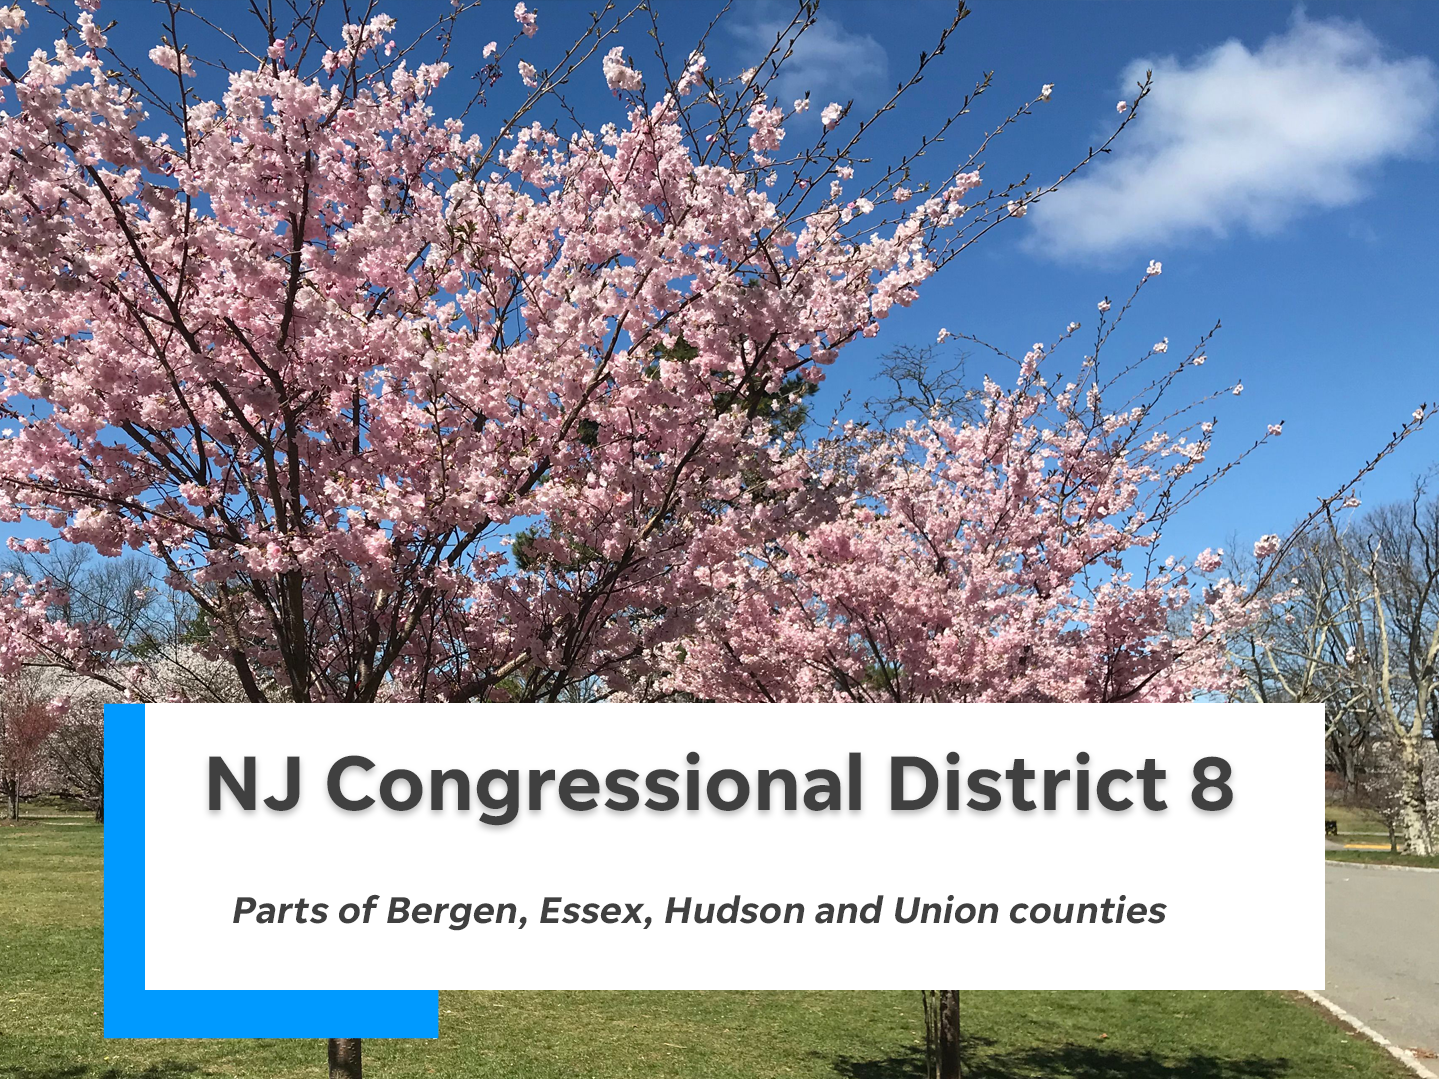 NJ's eighth congressional district is comprised of parts of Bergen, Essex, Hudson and Union counties